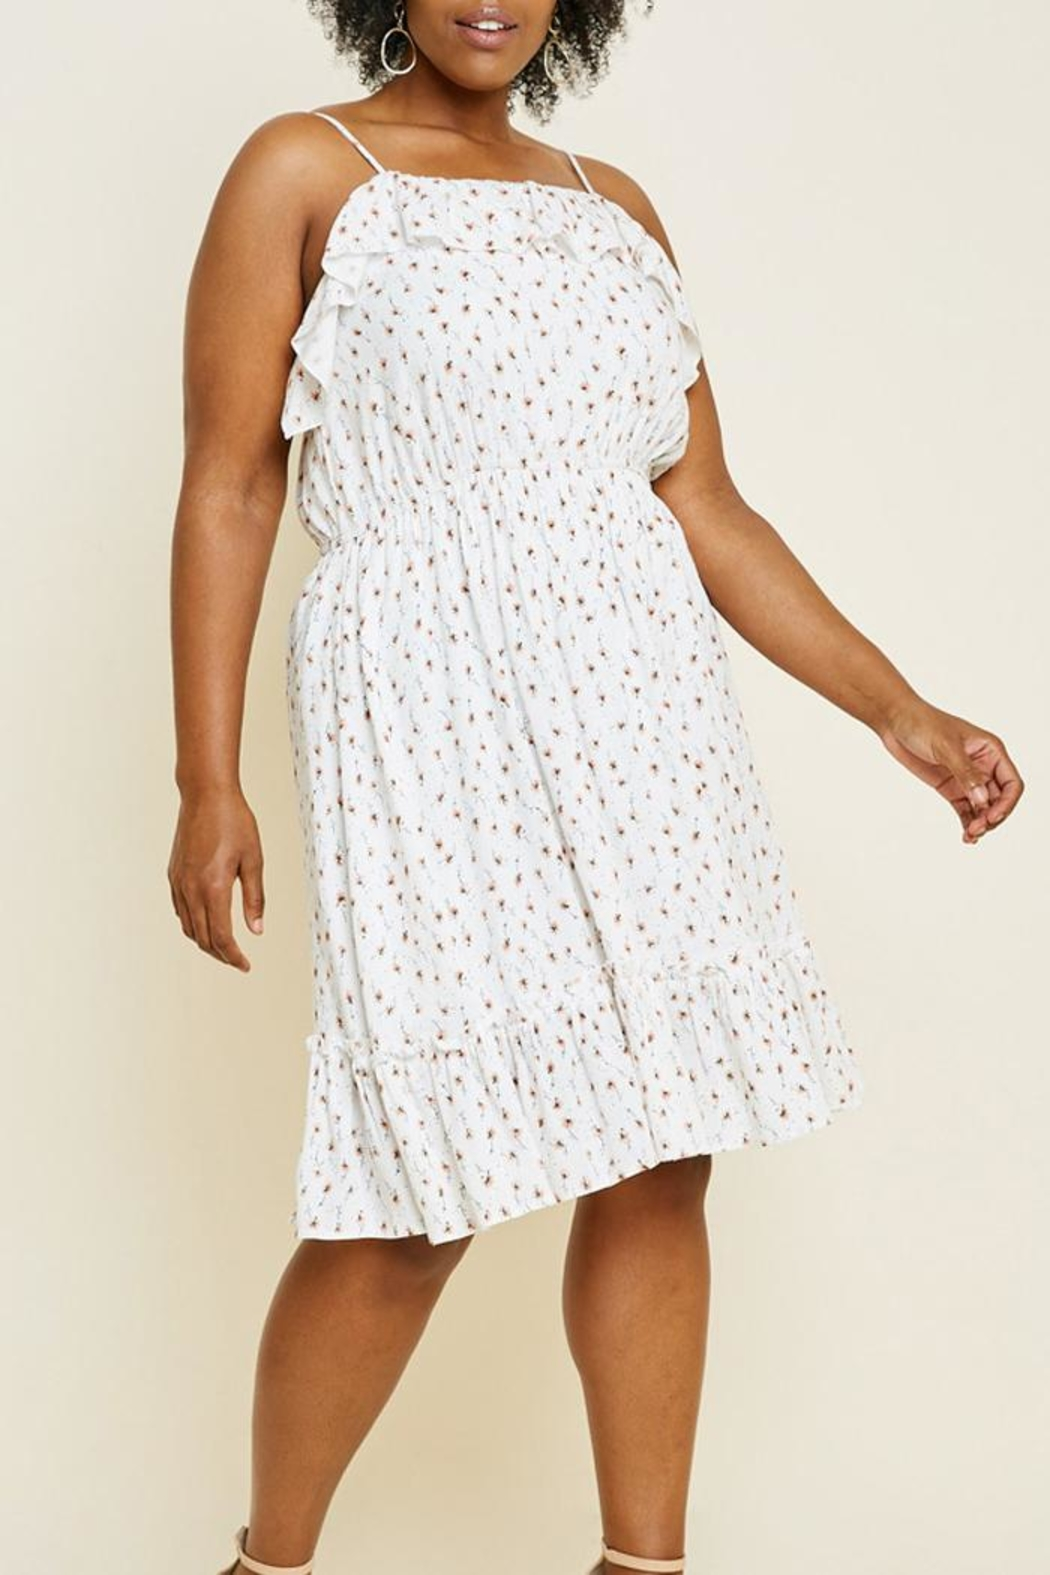 Hayden Los Angeles Floral Ruffle Dress - Main Image